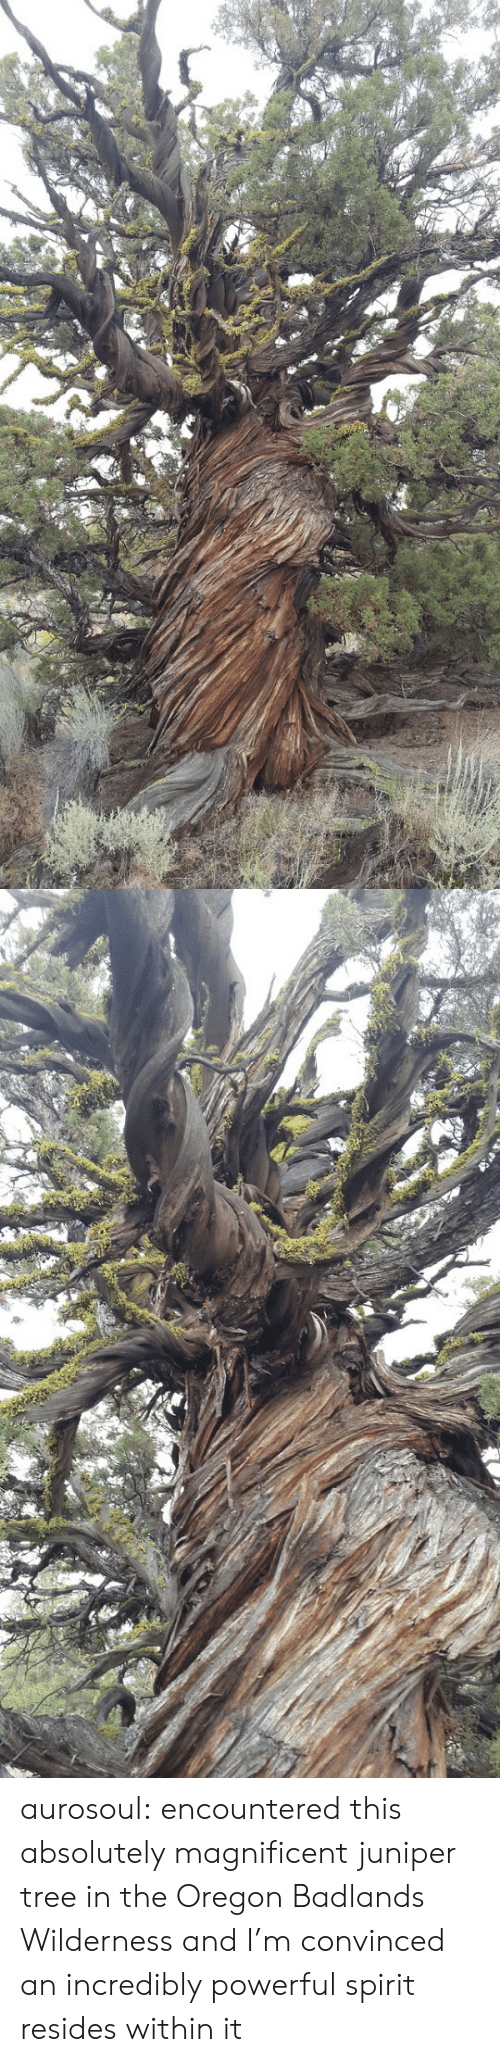 Spirit: aurosoul: encountered this absolutely magnificent juniper tree in the Oregon Badlands Wilderness and I'm convinced an incredibly powerful spirit resides within it